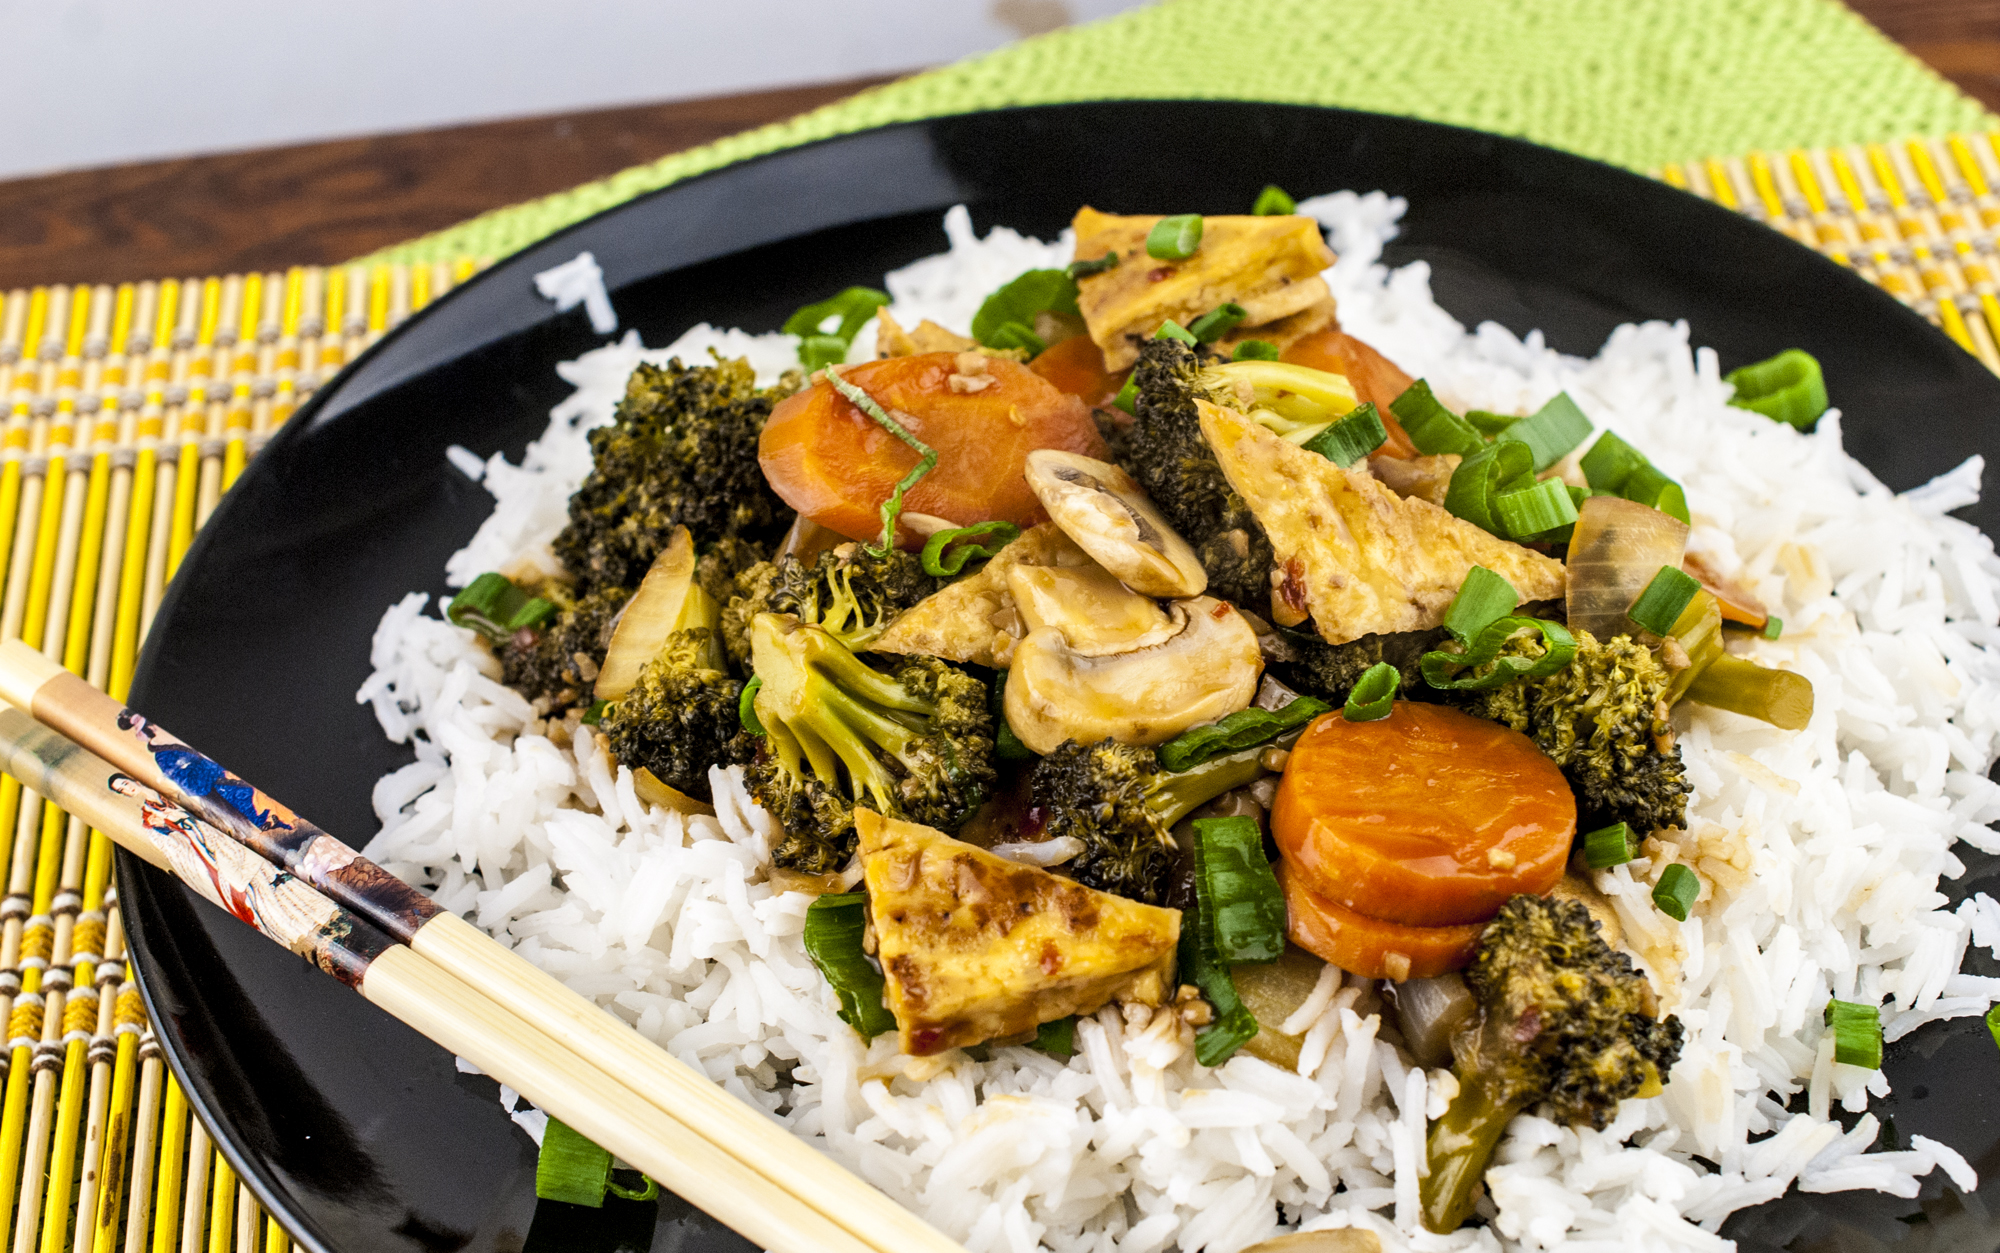 Tofu Broccoli Stir Fry